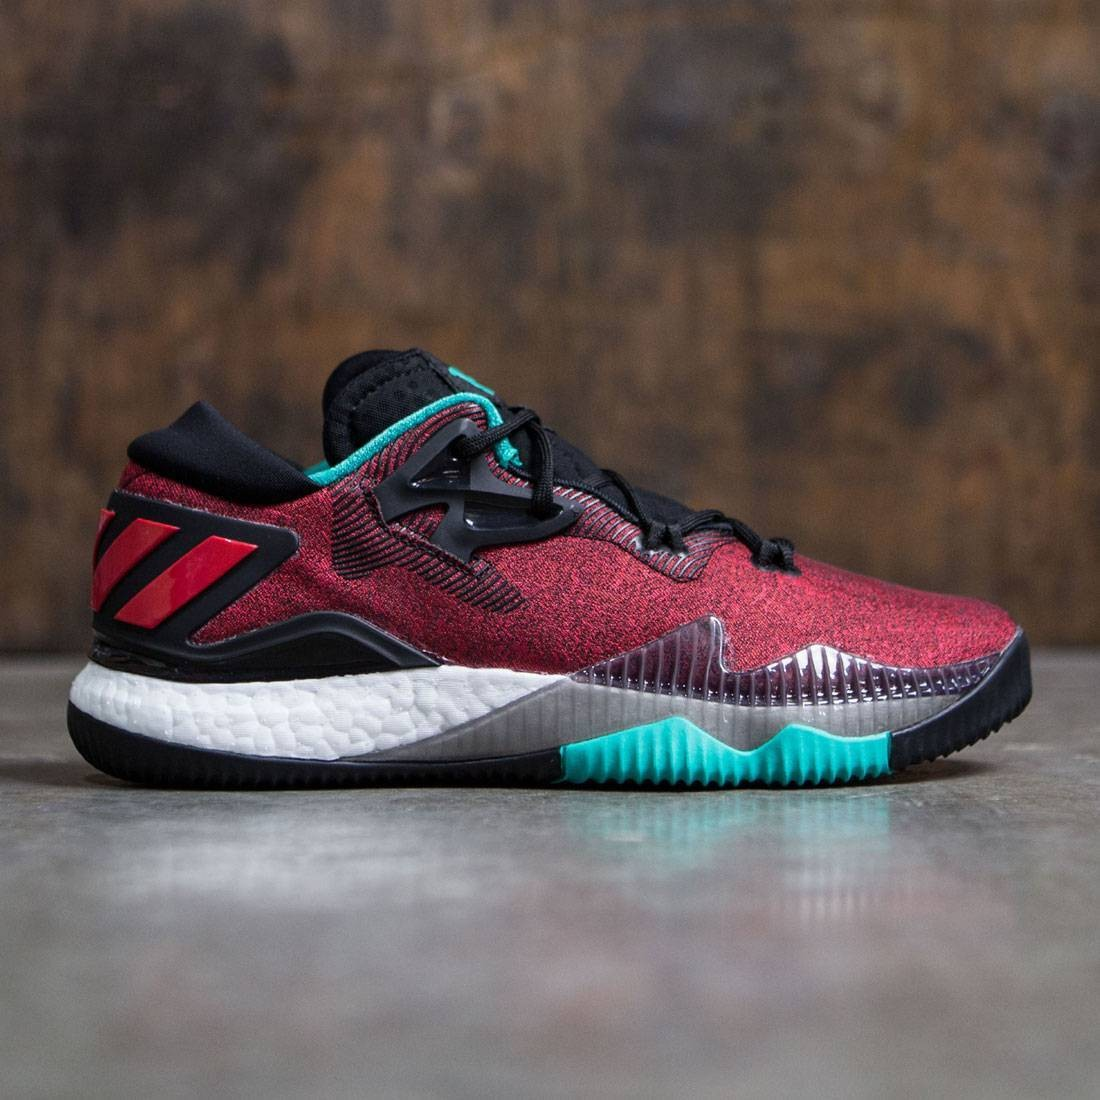 premium selection 0ca09 5f6ee Adidas Men Crazylight Boost Low 2016 red black footwear whit